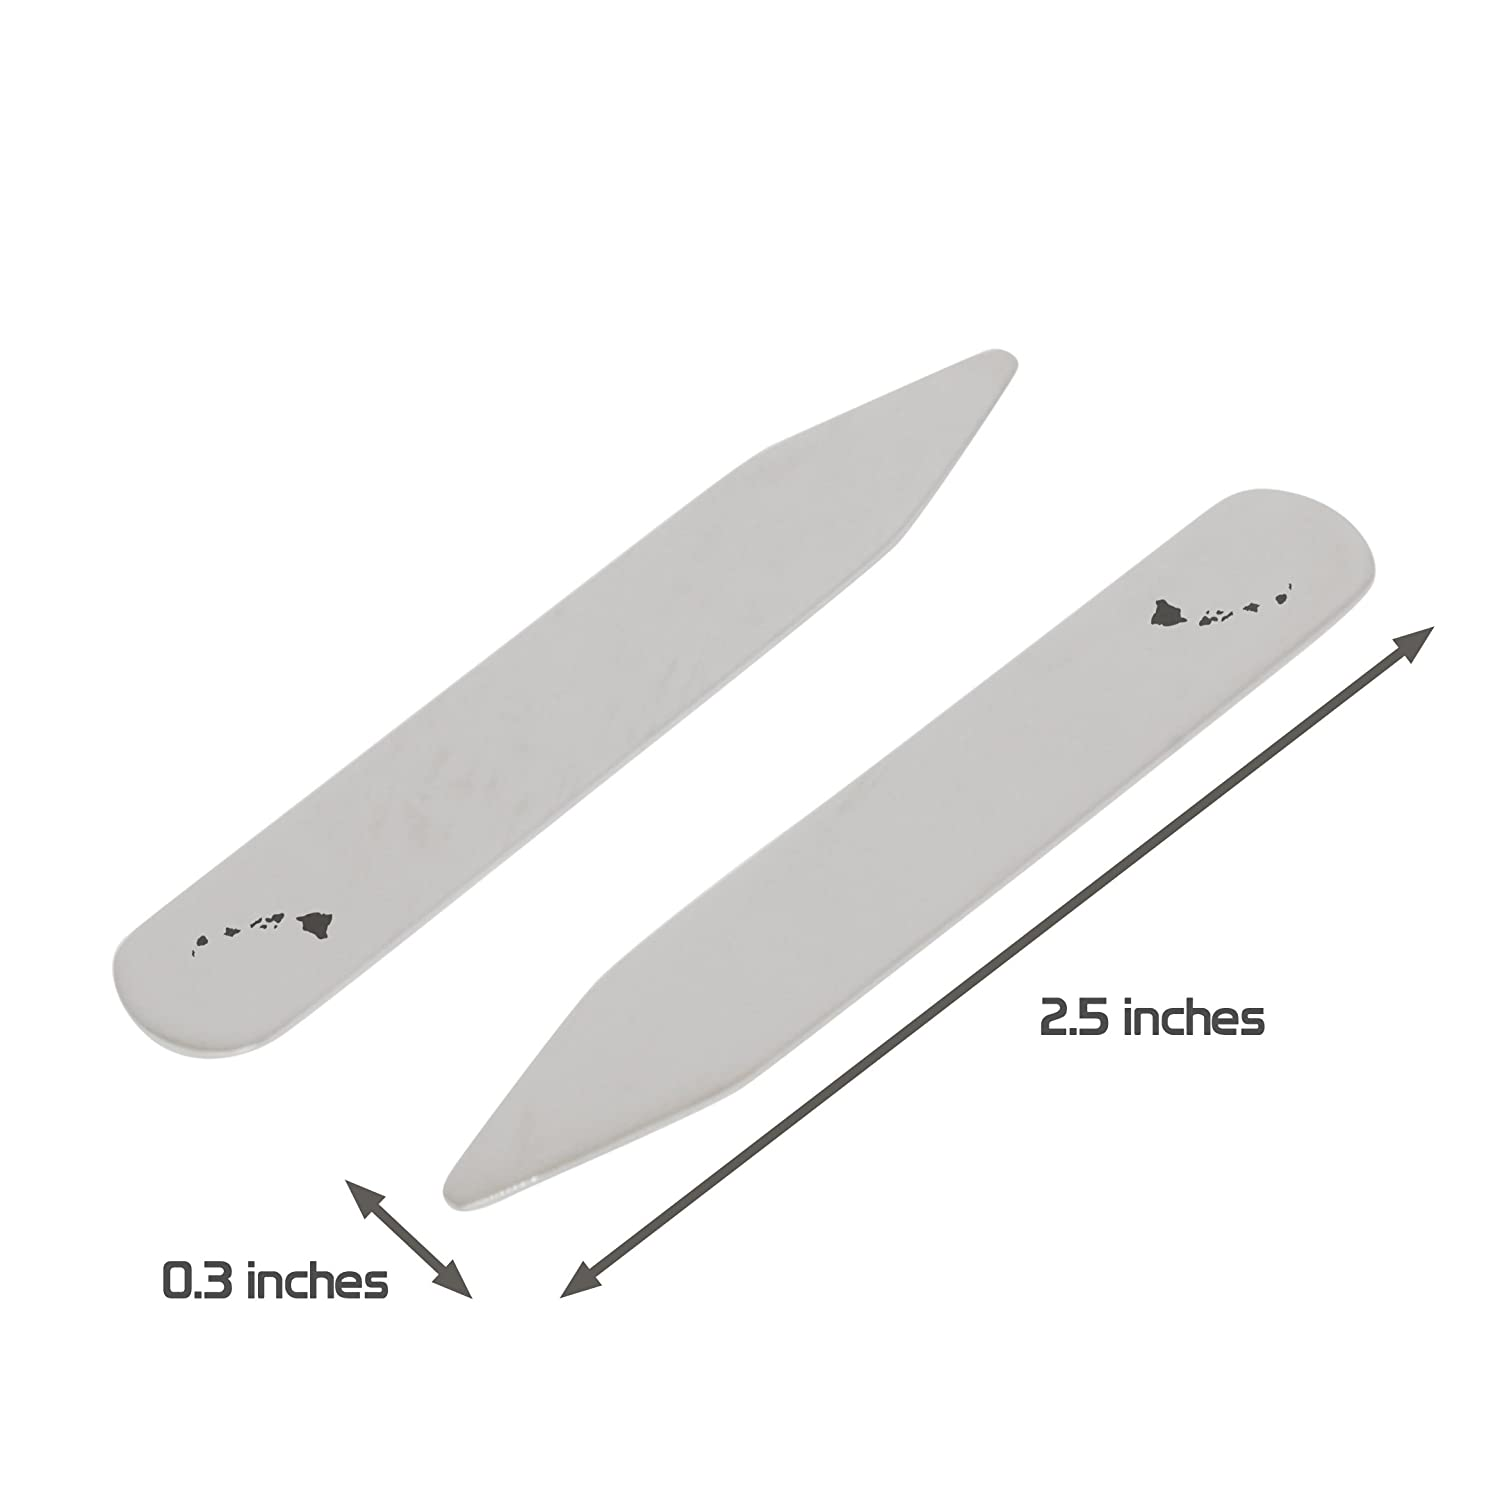 Made In USA 2.5 Inch Metal Collar Stiffeners MODERN GOODS SHOP Stainless Steel Collar Stays With Laser Engraved Hawaii Design